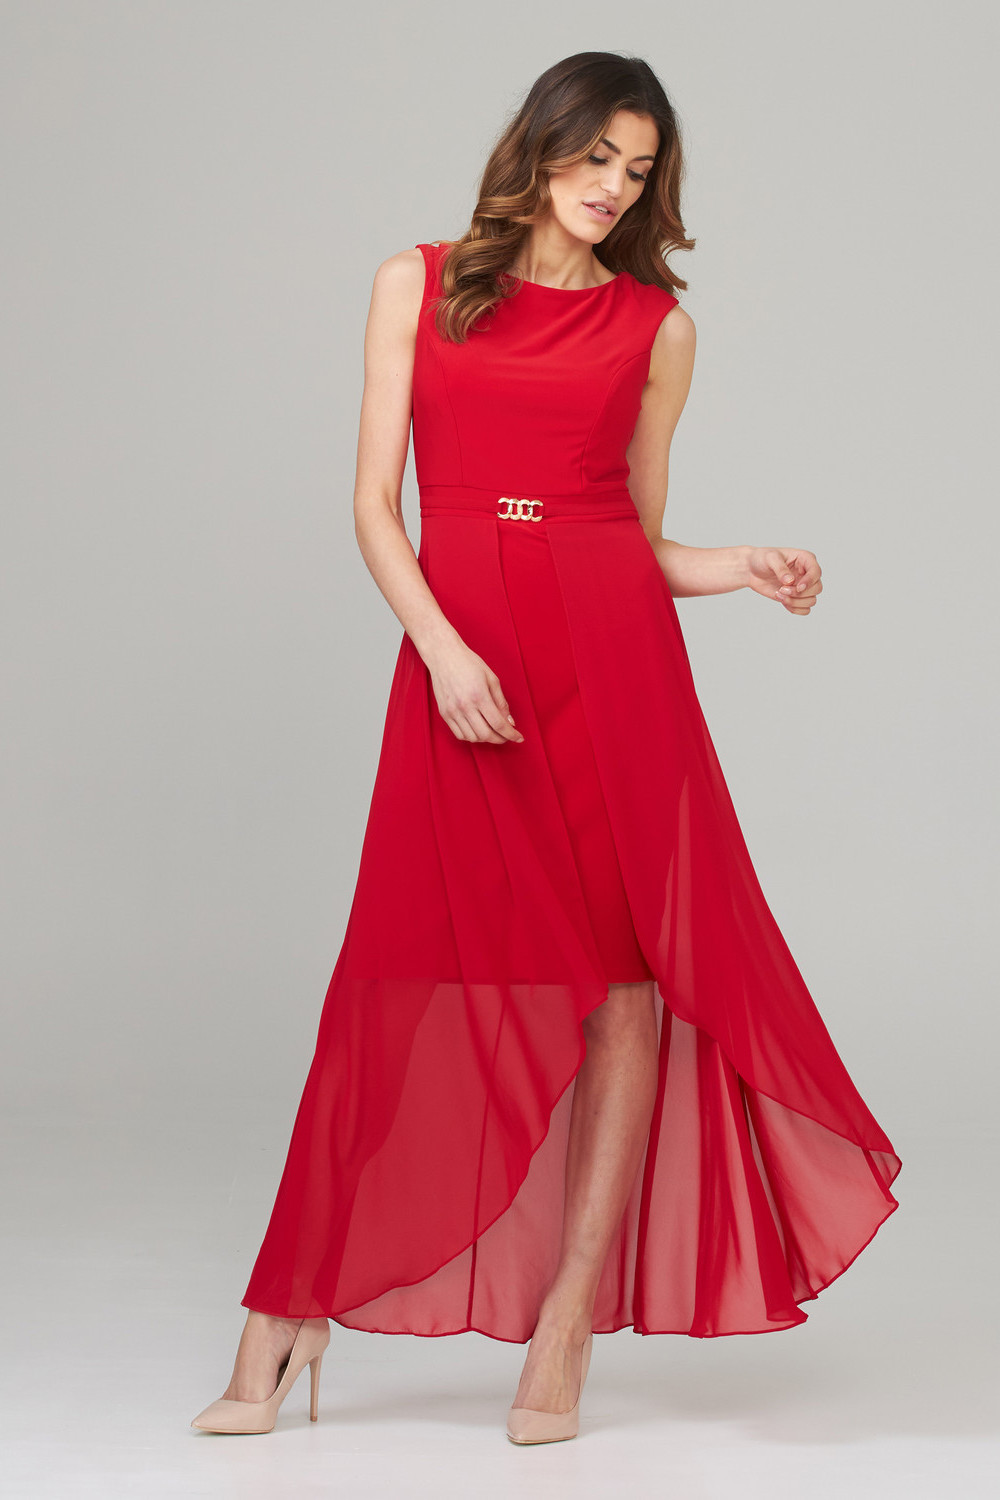 Joseph Ribkoff Robes Rouge A Levres 173 Style 202159